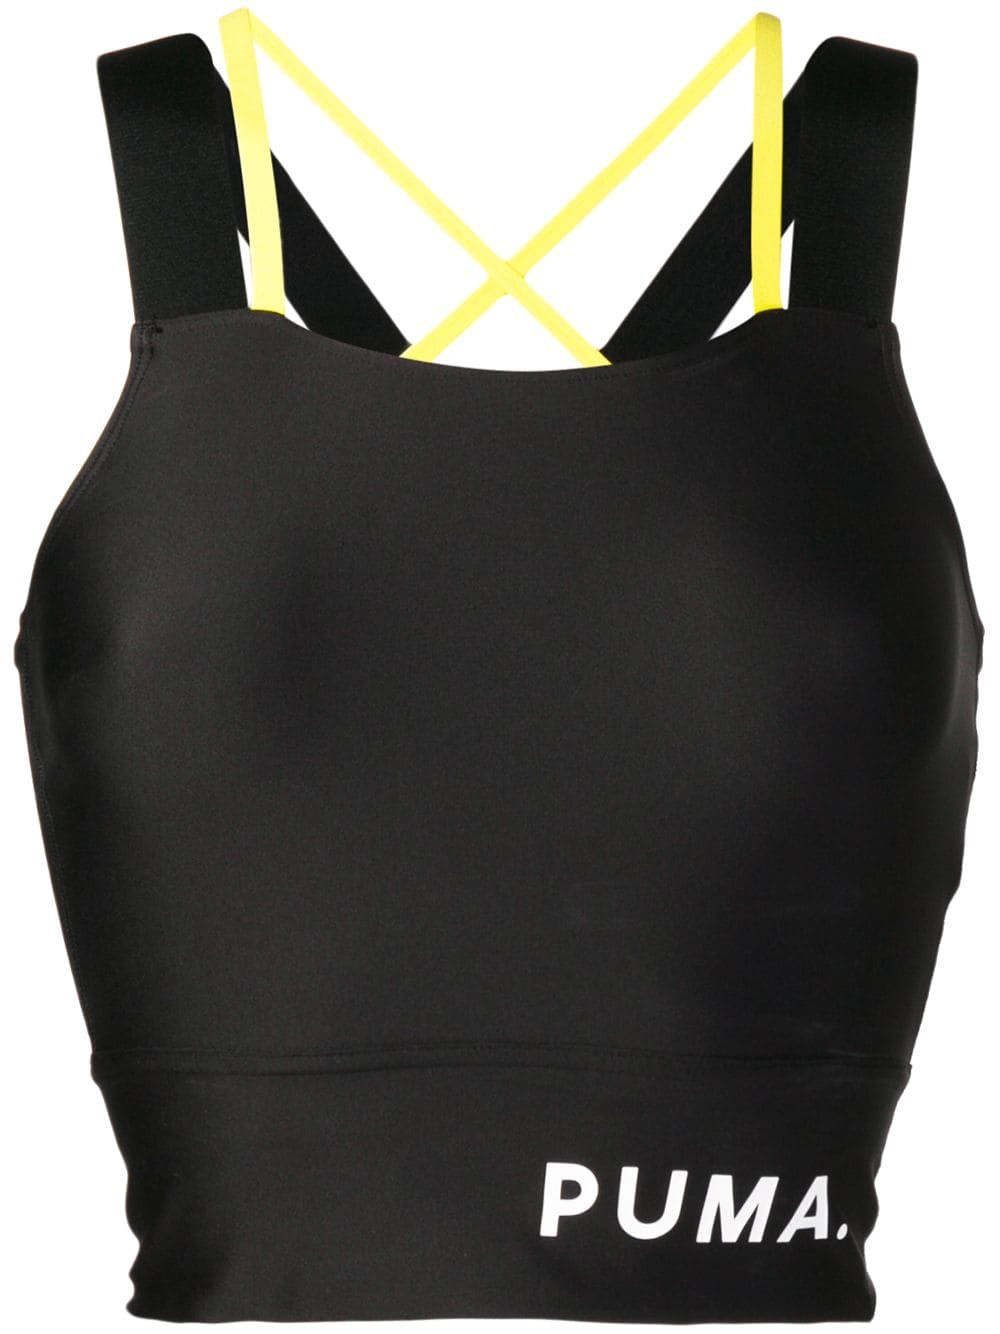 Logo banded crop top in 2020 Puma outfit, Fashion, Black